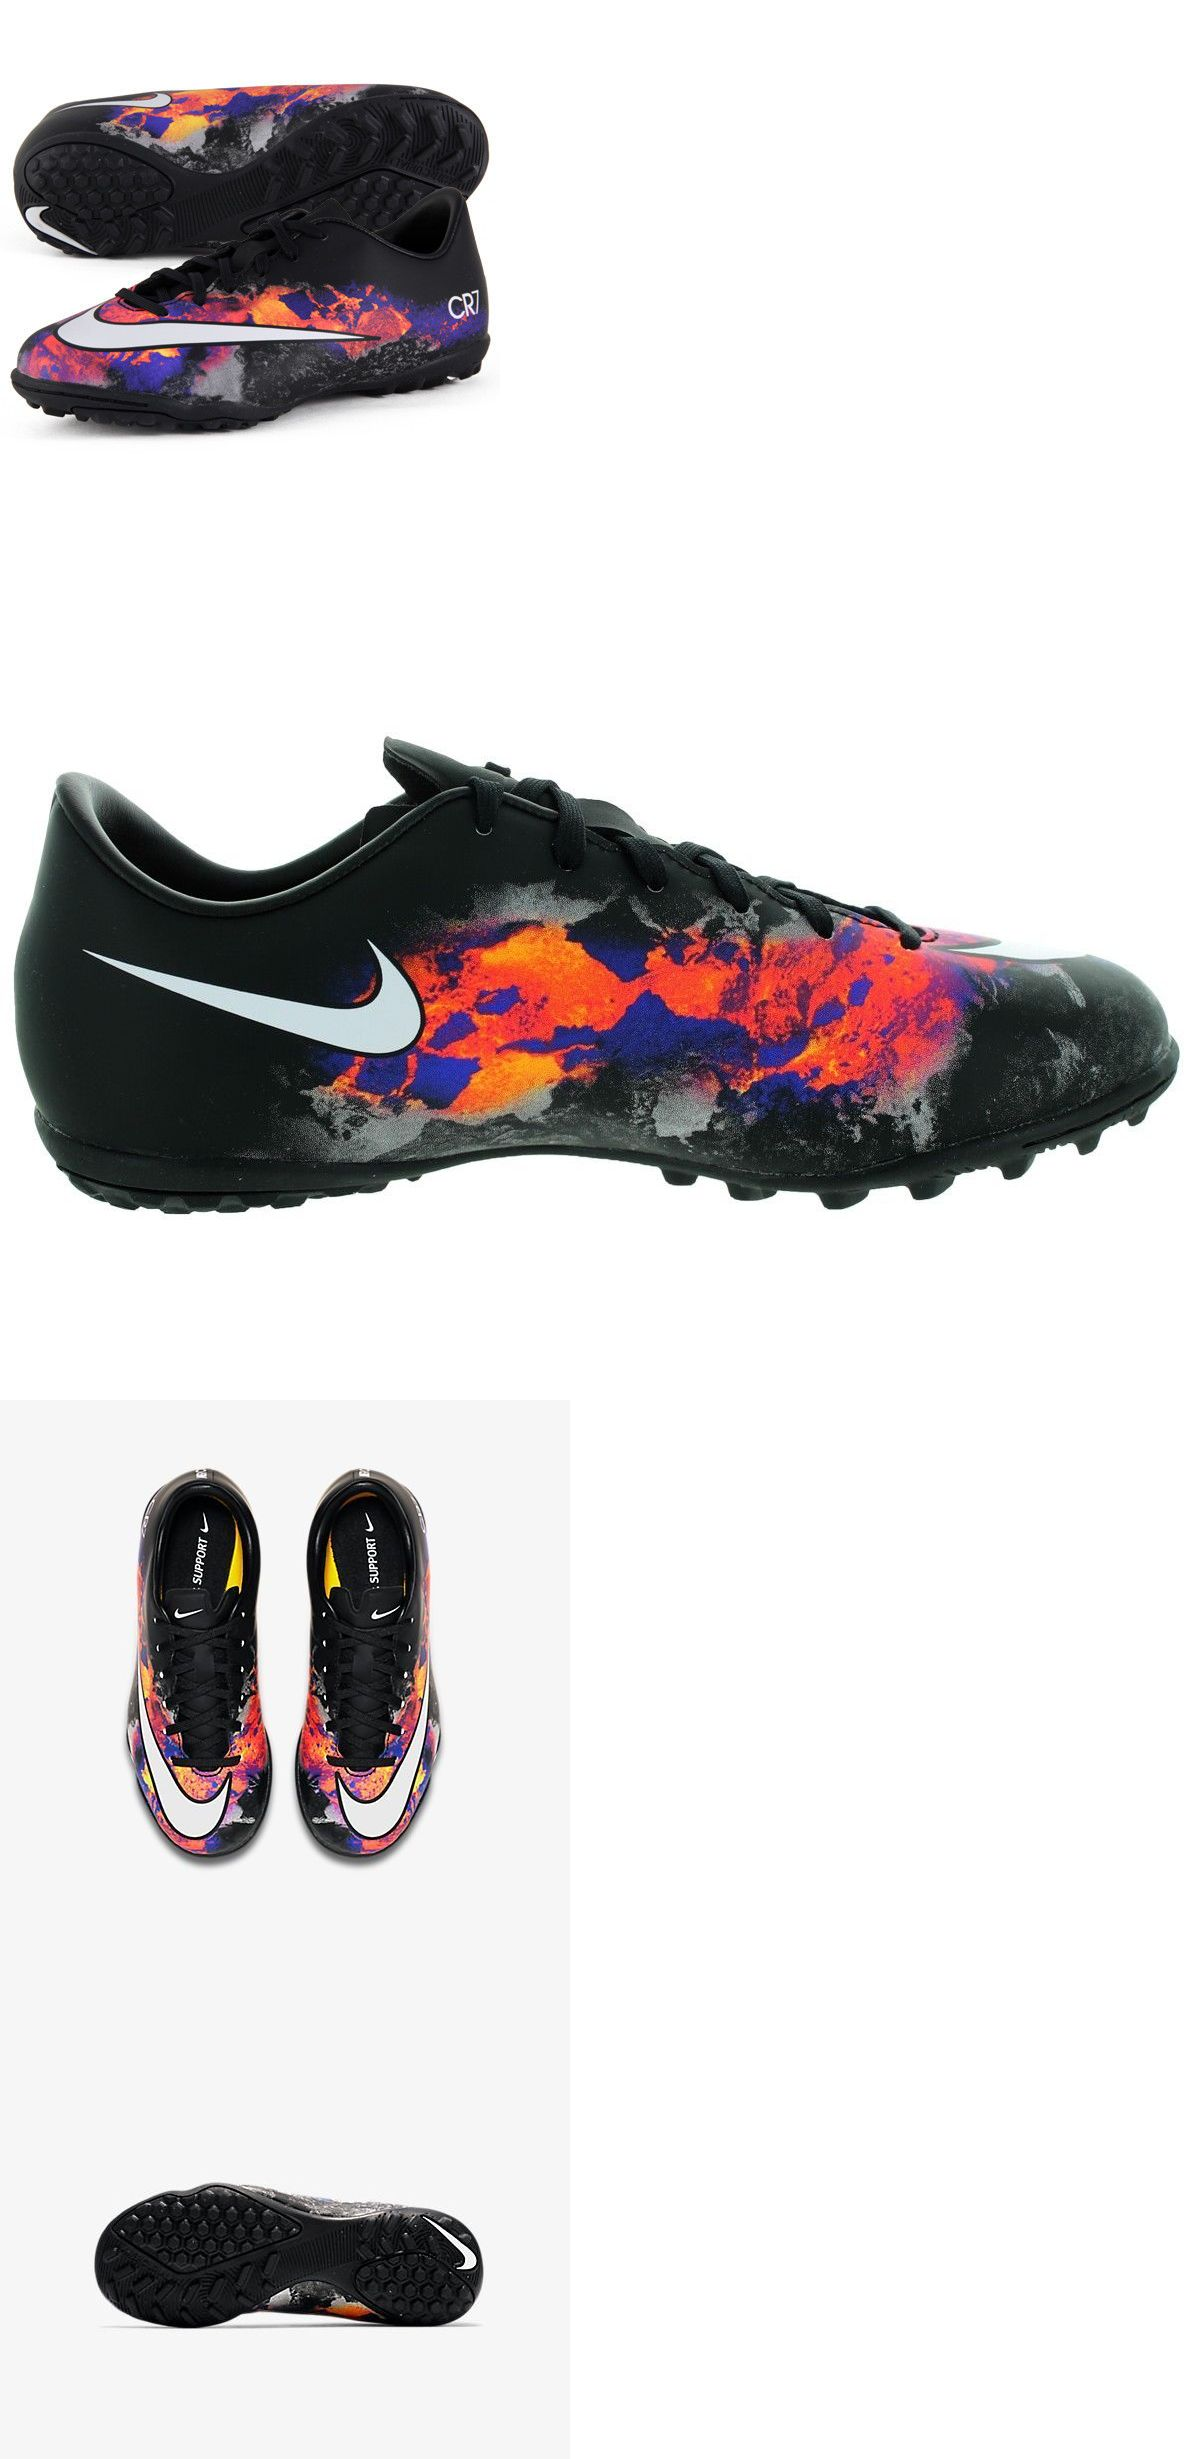 f7fbdde5a ... best price youth 159177 nike jr. mercurial victory v tf turf soccer  shoes size 2y